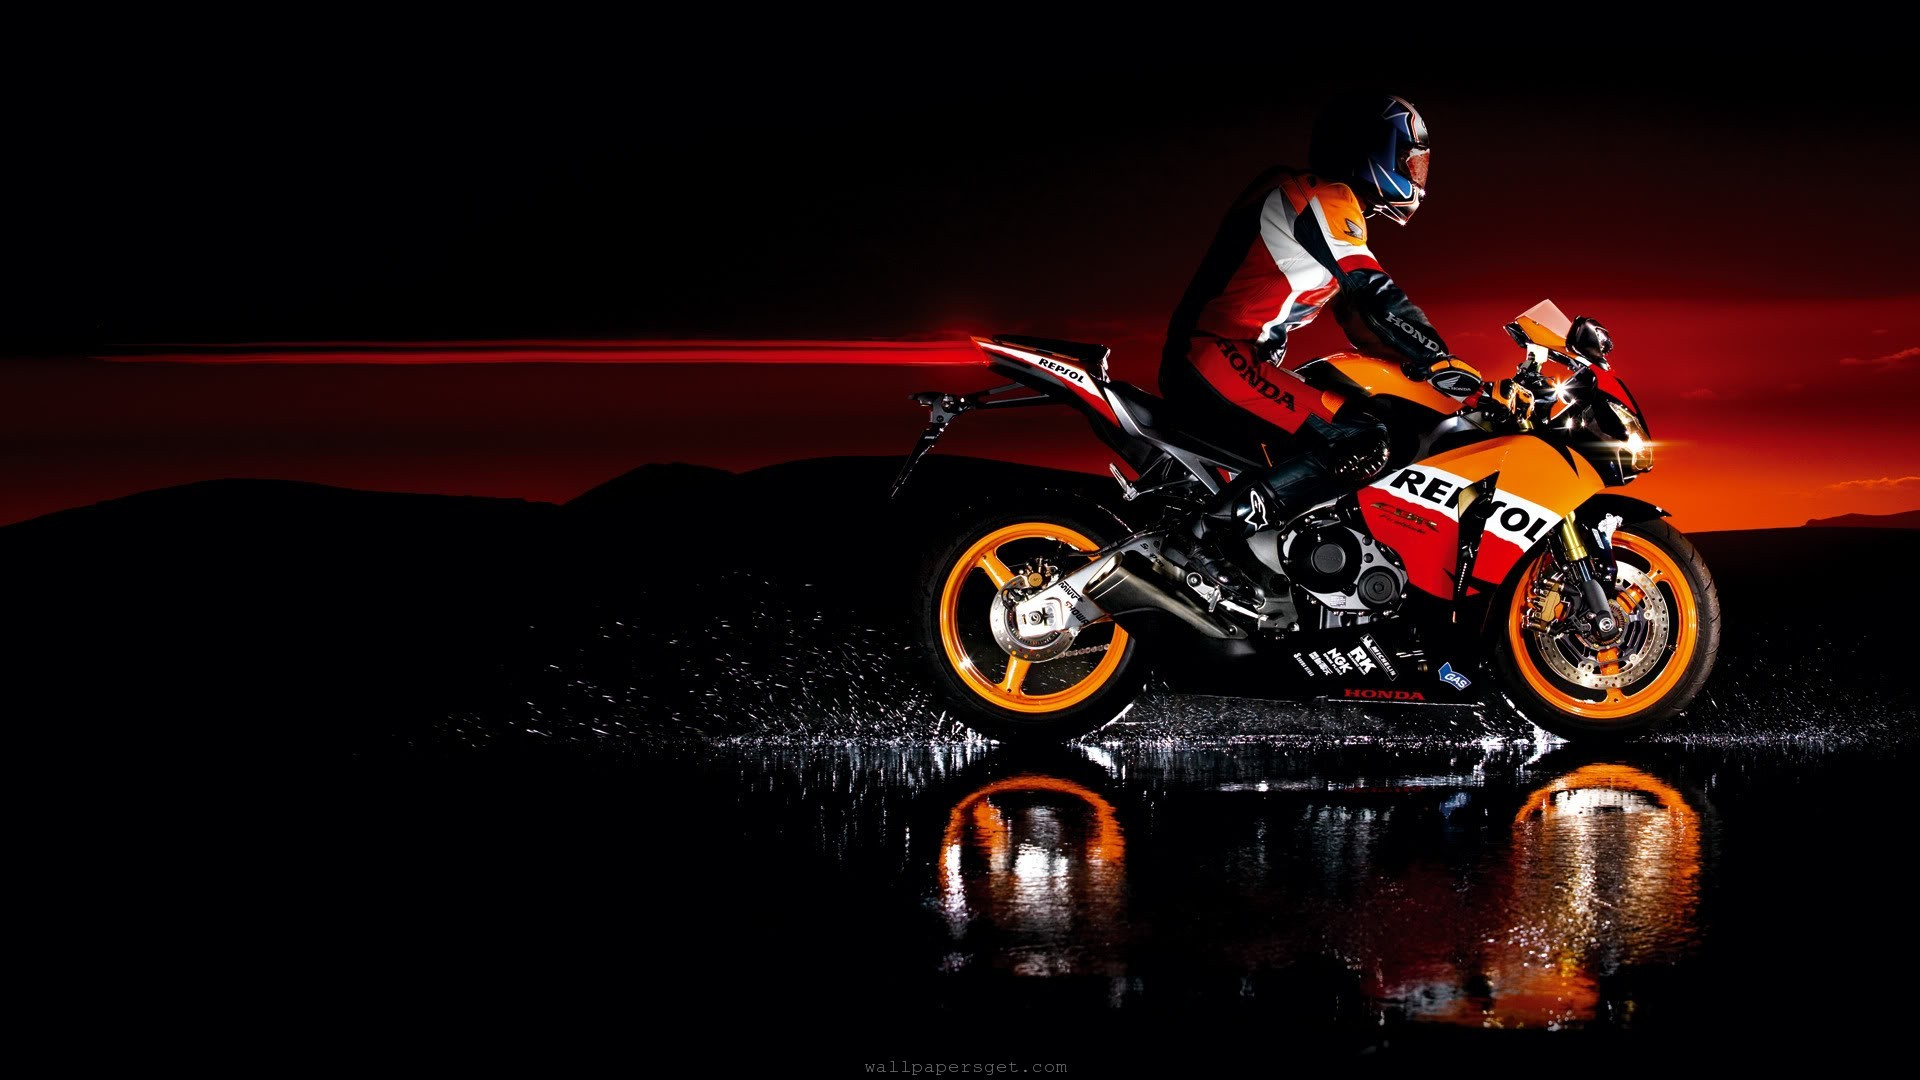 Motorcycle Background HD Wallpaper Free Download